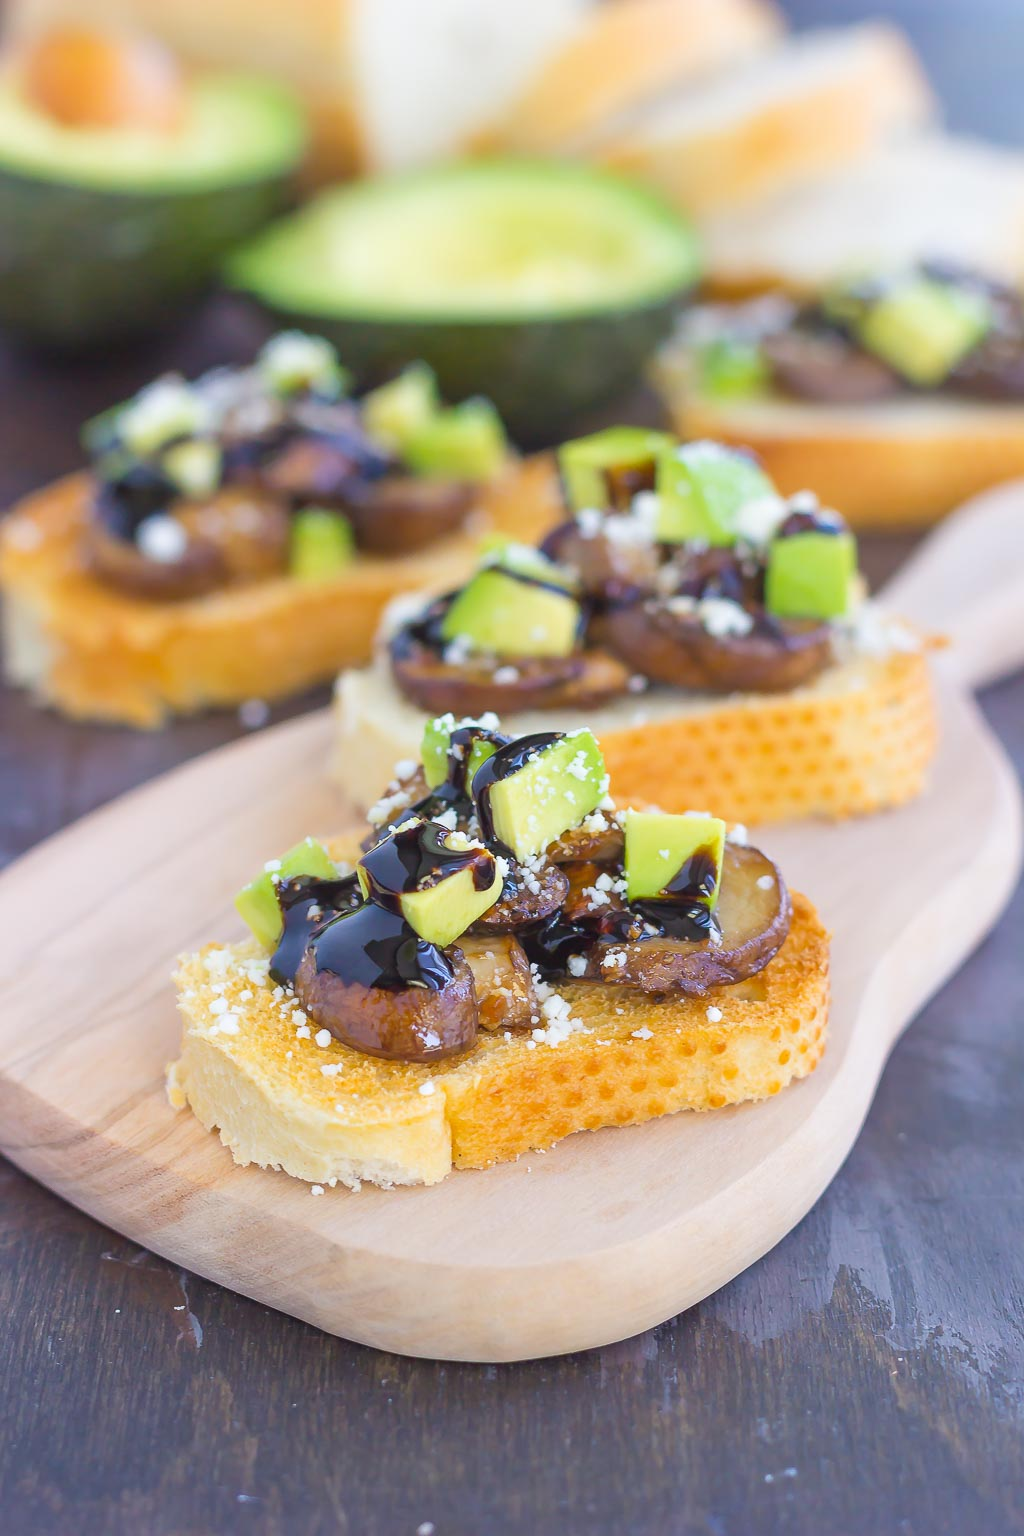 This Mushroom, Avocado and Feta Toast combines fresh mushrooms, ripe avocado and creamy feta cheese, piled high on toasted bread and drizzled with a balsamic glaze. This simple toast makes a deliciously easy appetizer or side dish!